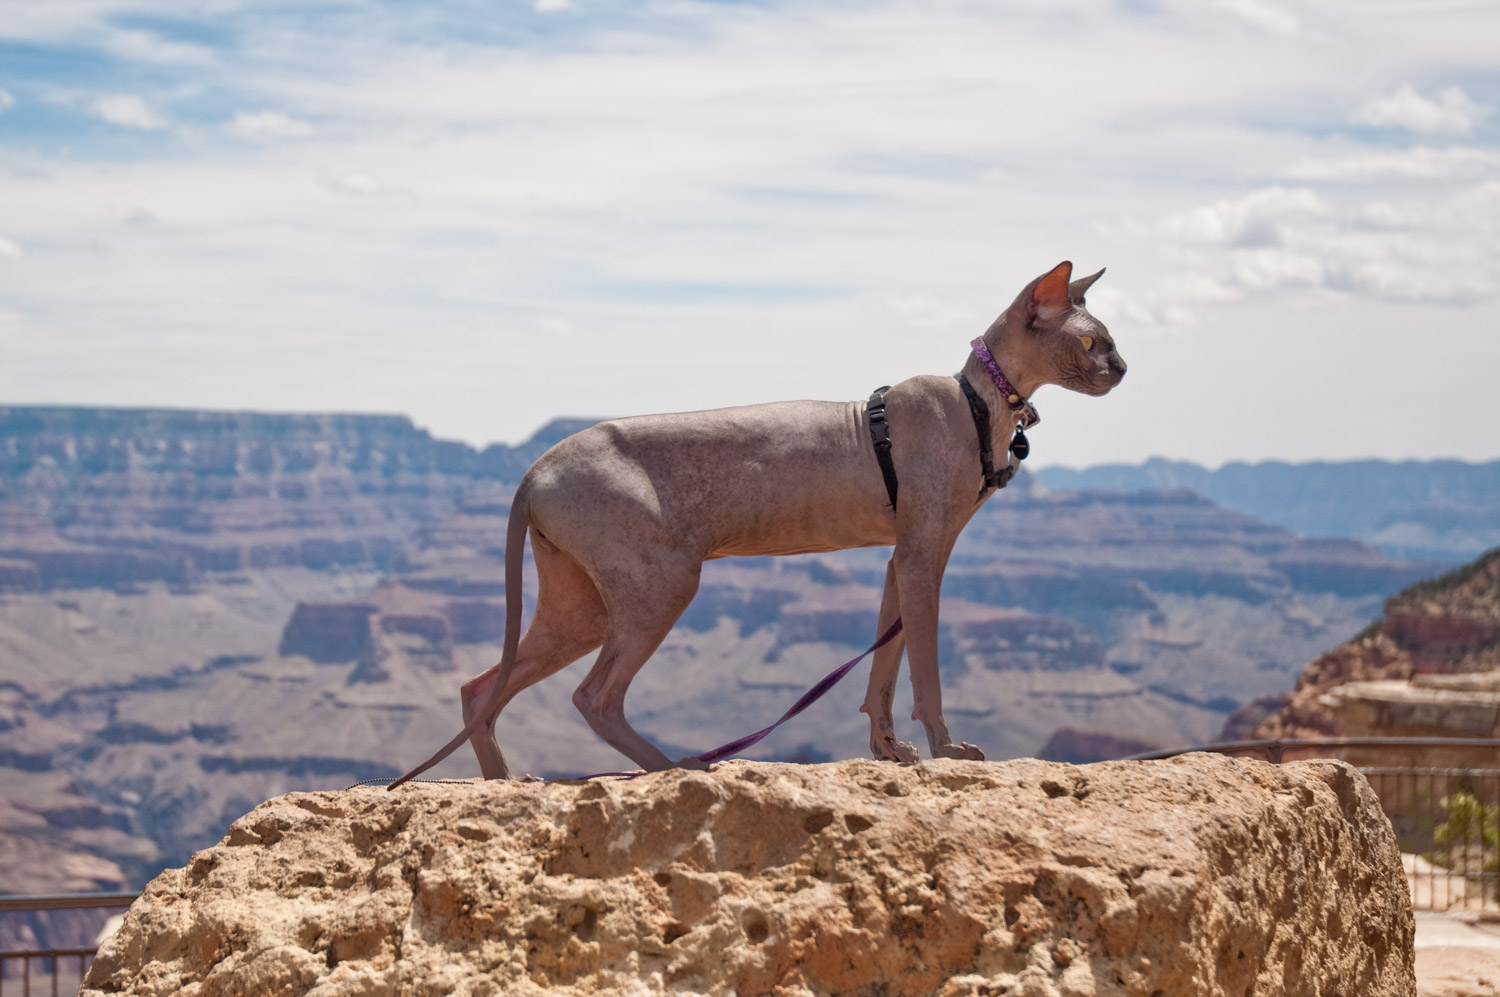 Omar the Sphynx cat has seen more states and national parks than lots of people we know!